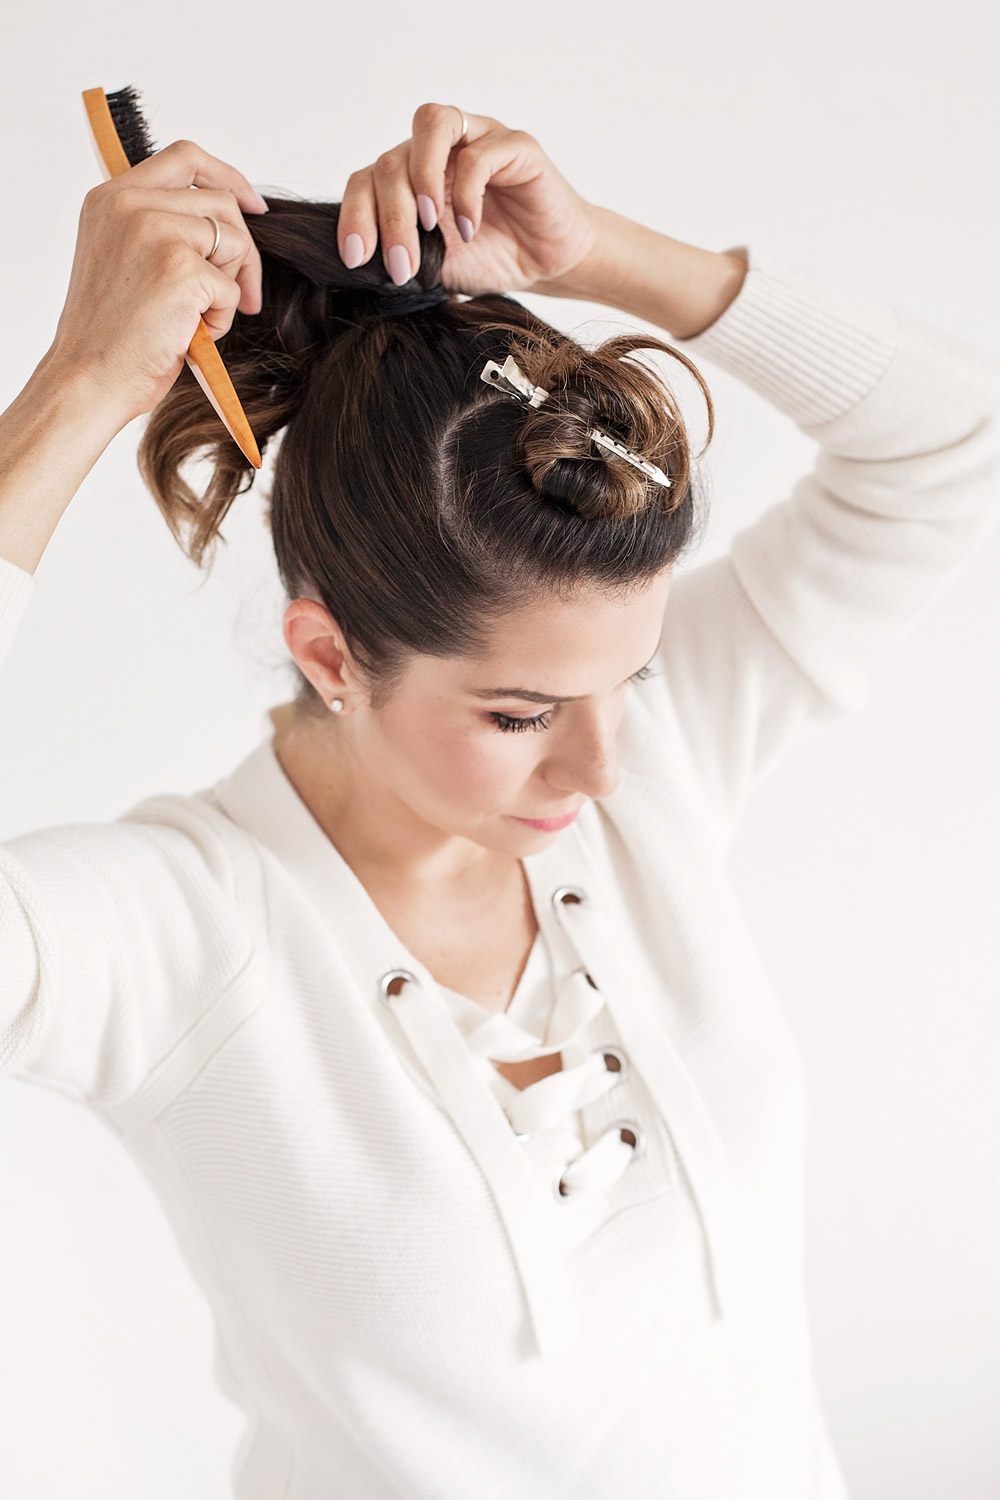 hair-tutorial-top-bun-work-hair-ideas-medium-hair-tutorials-how-to-make-the-perfect-bun4